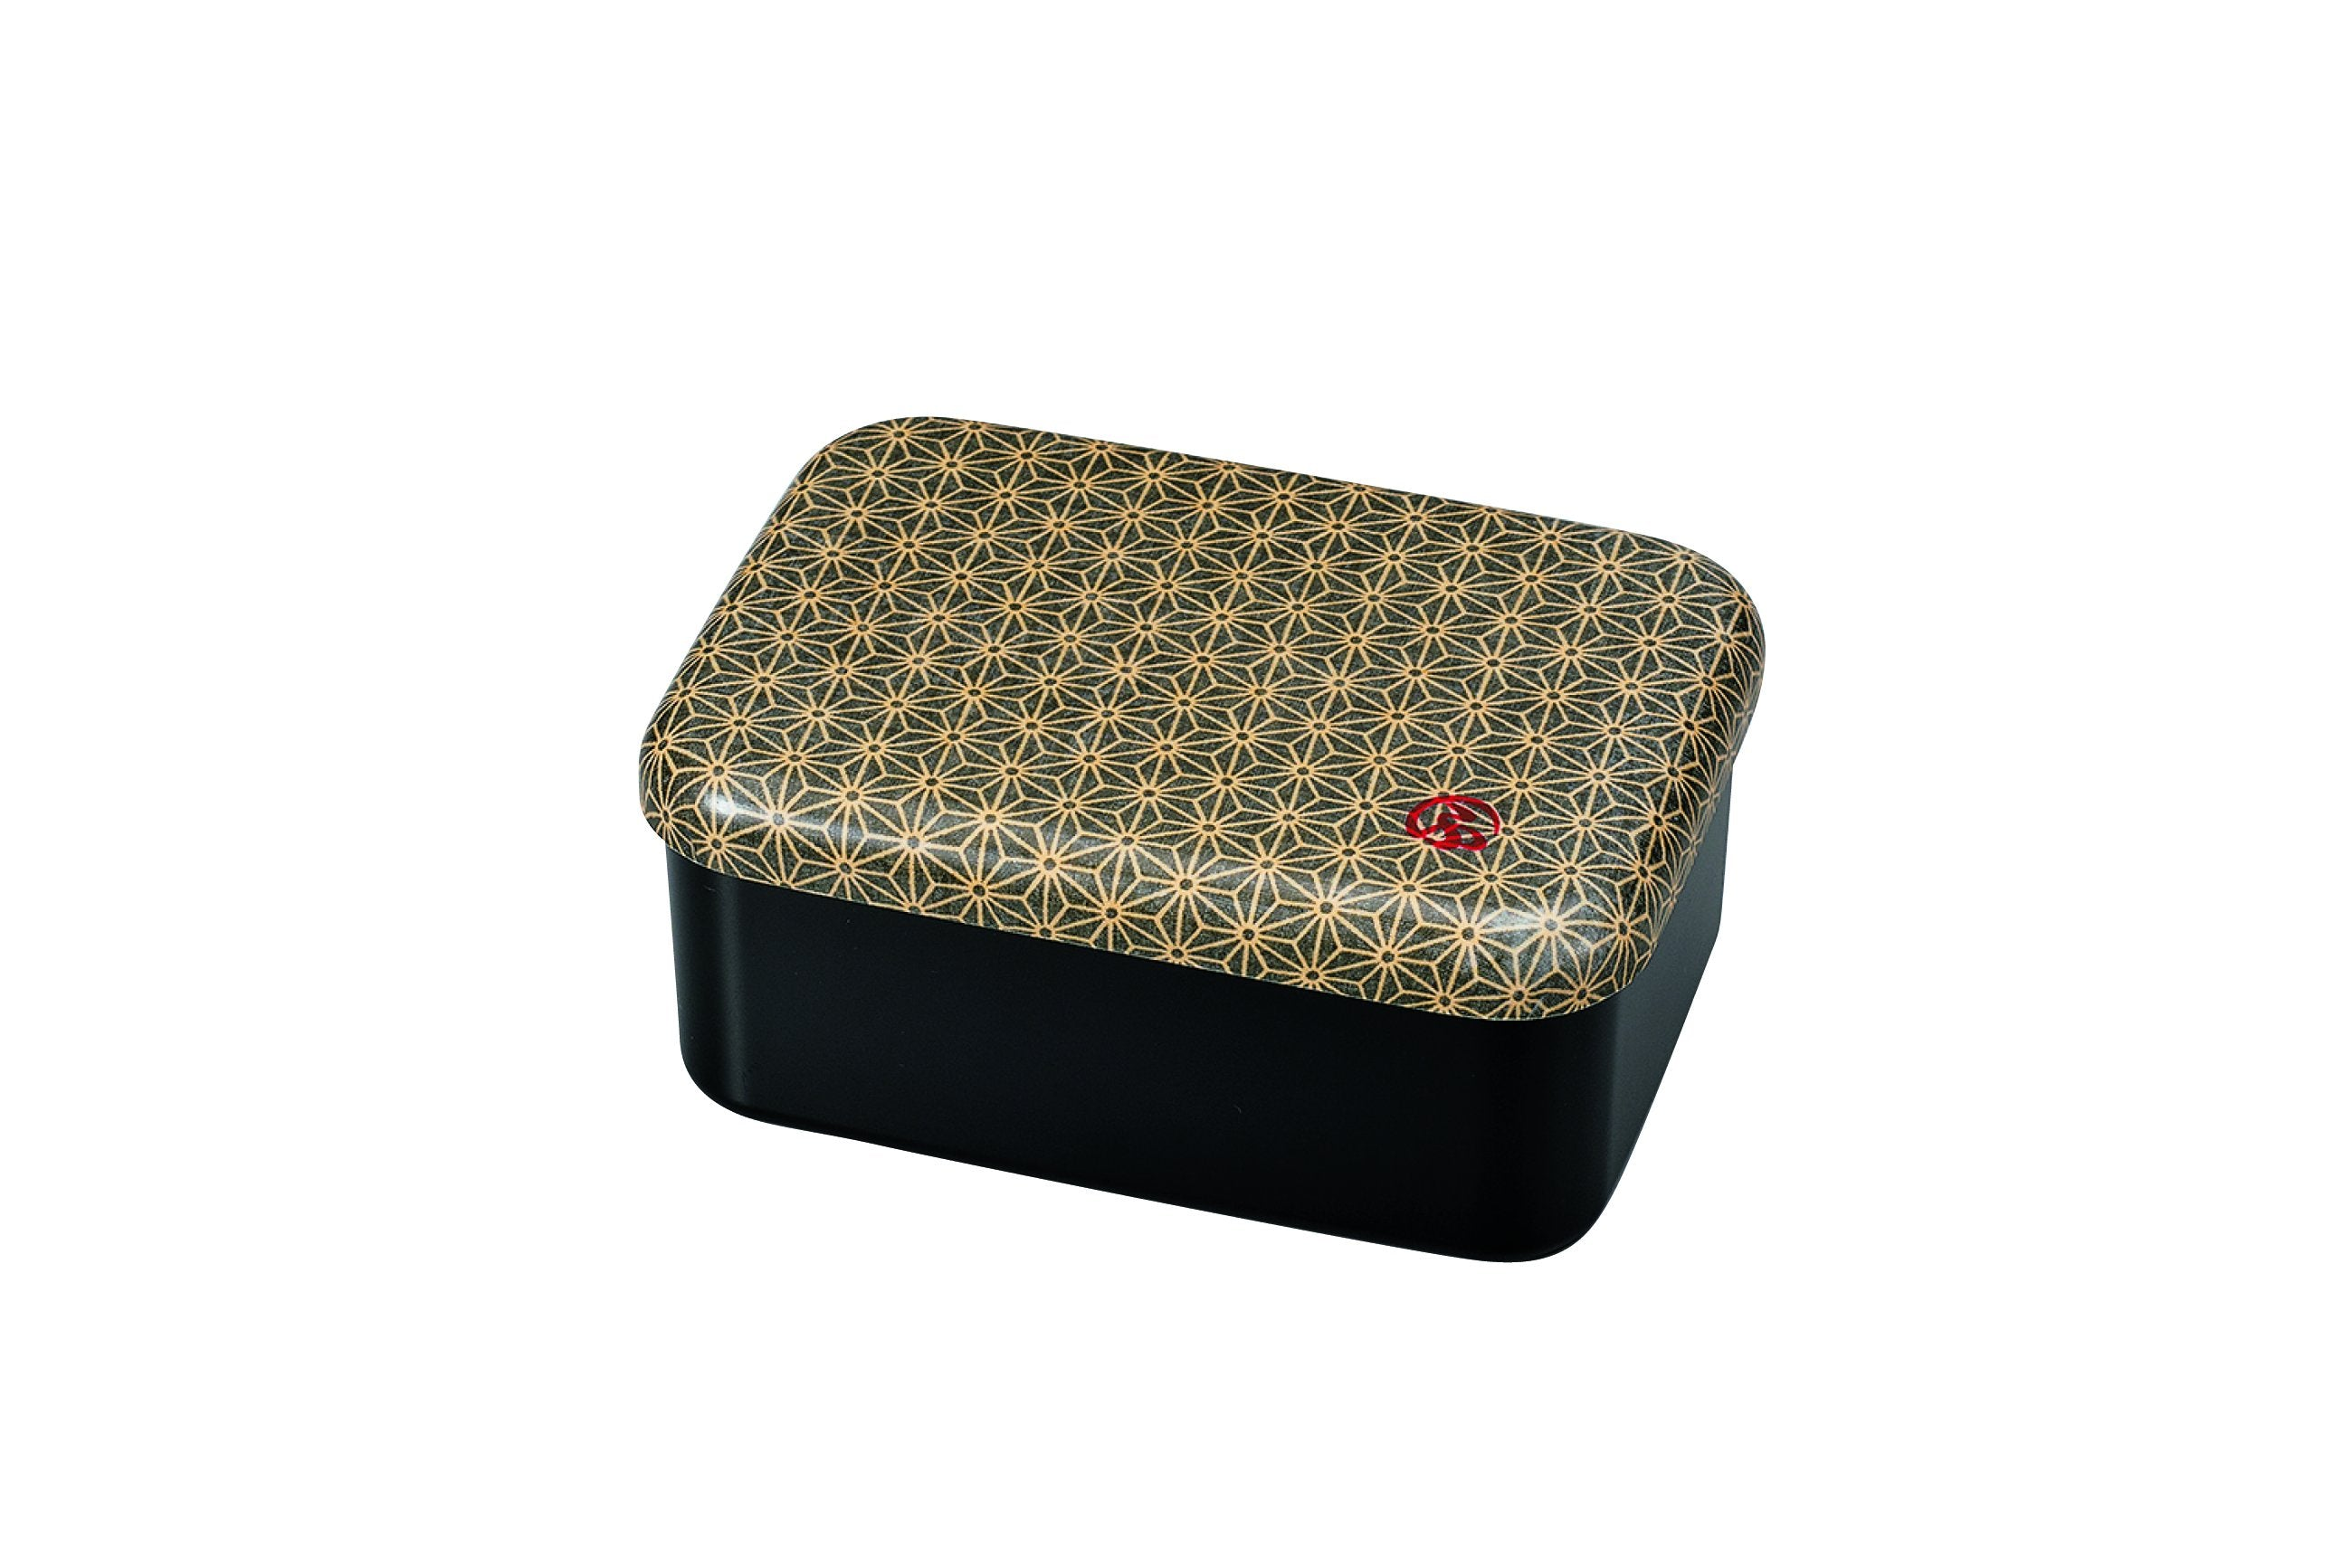 Wafu Cloth One Tier Rectangle Bento Box | Asanoha by Hakoya - Bento&co Japanese Bento Lunch Boxes and Kitchenware Specialists